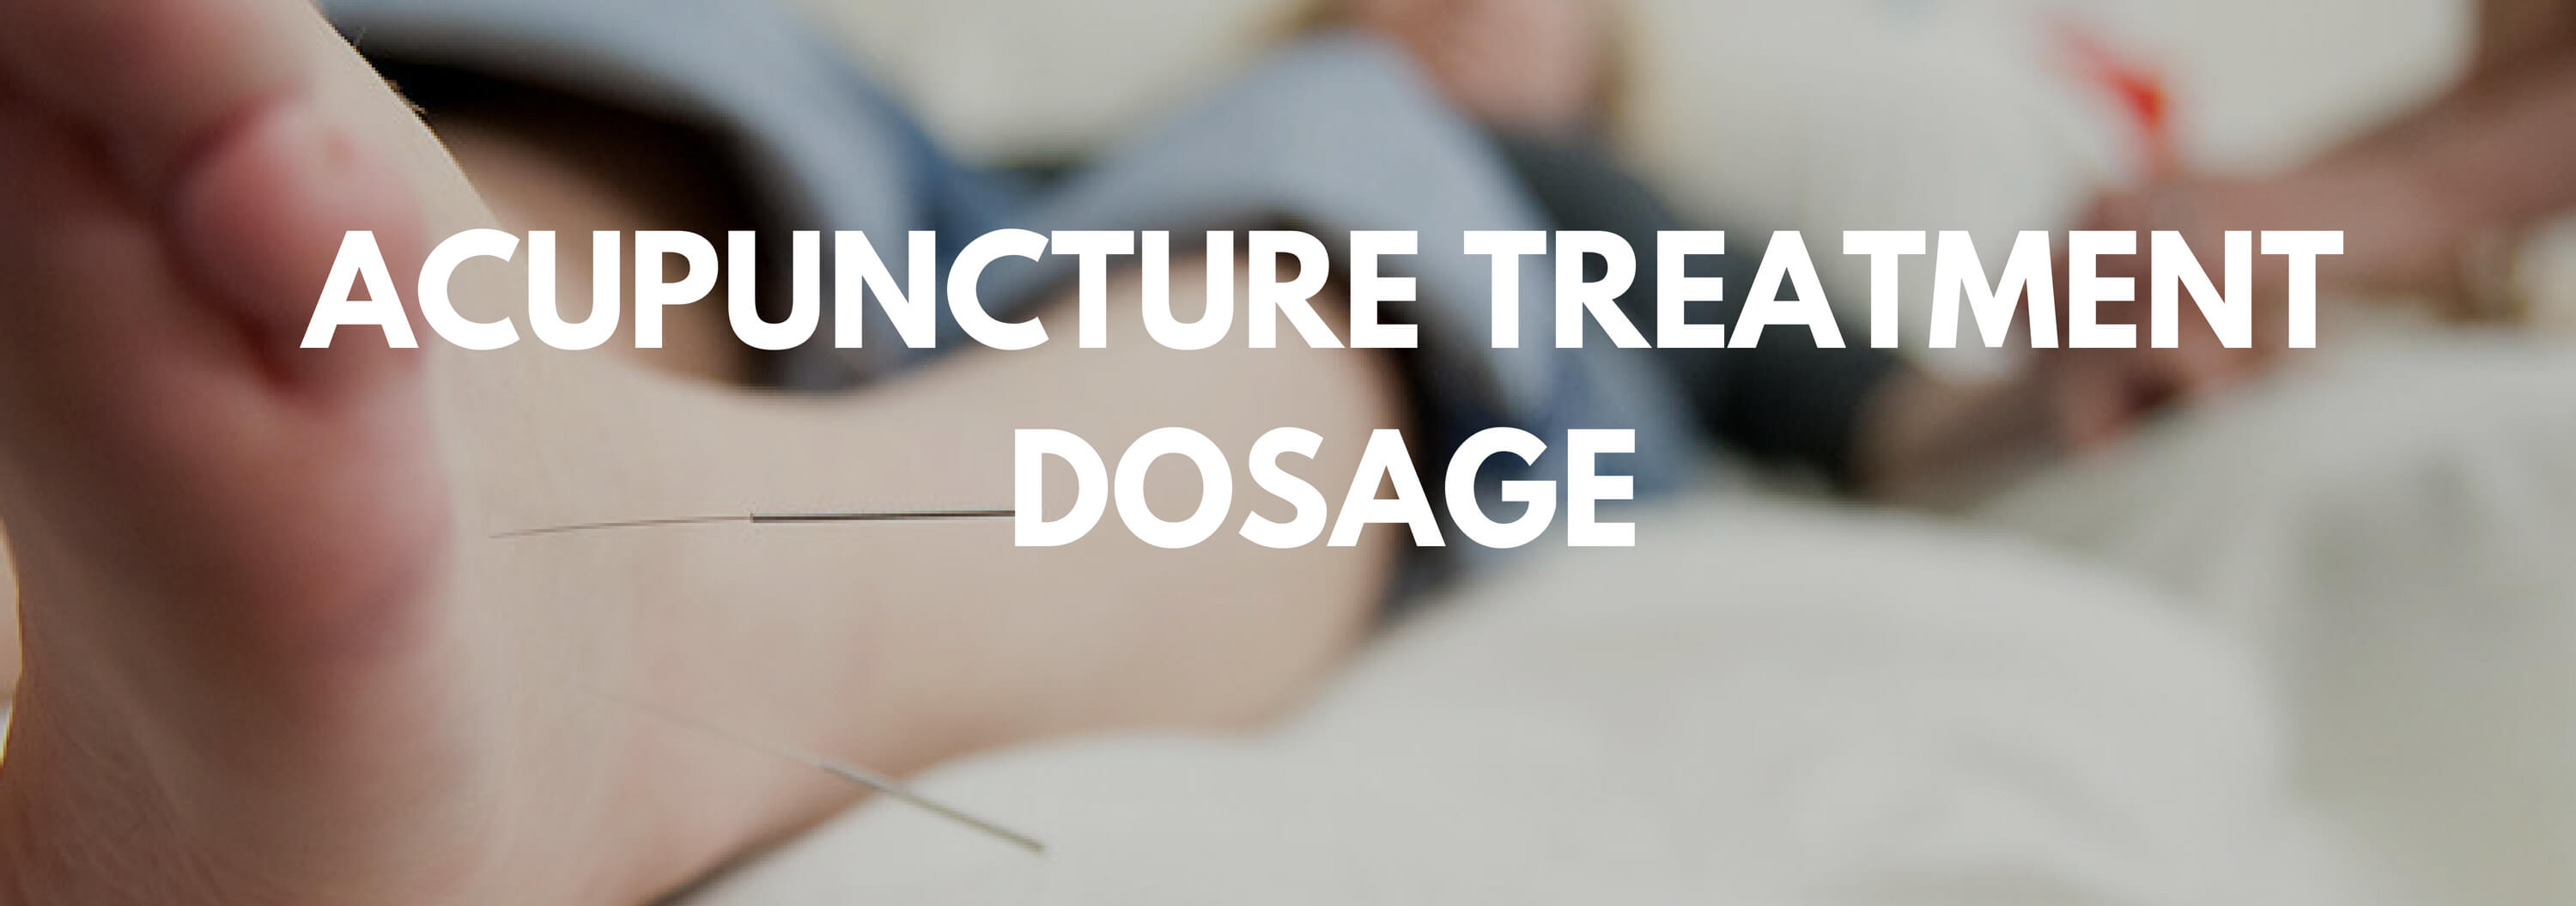 """Photo of acupuncture with a quote, """"Acupuncture Treatment Dosage""""."""